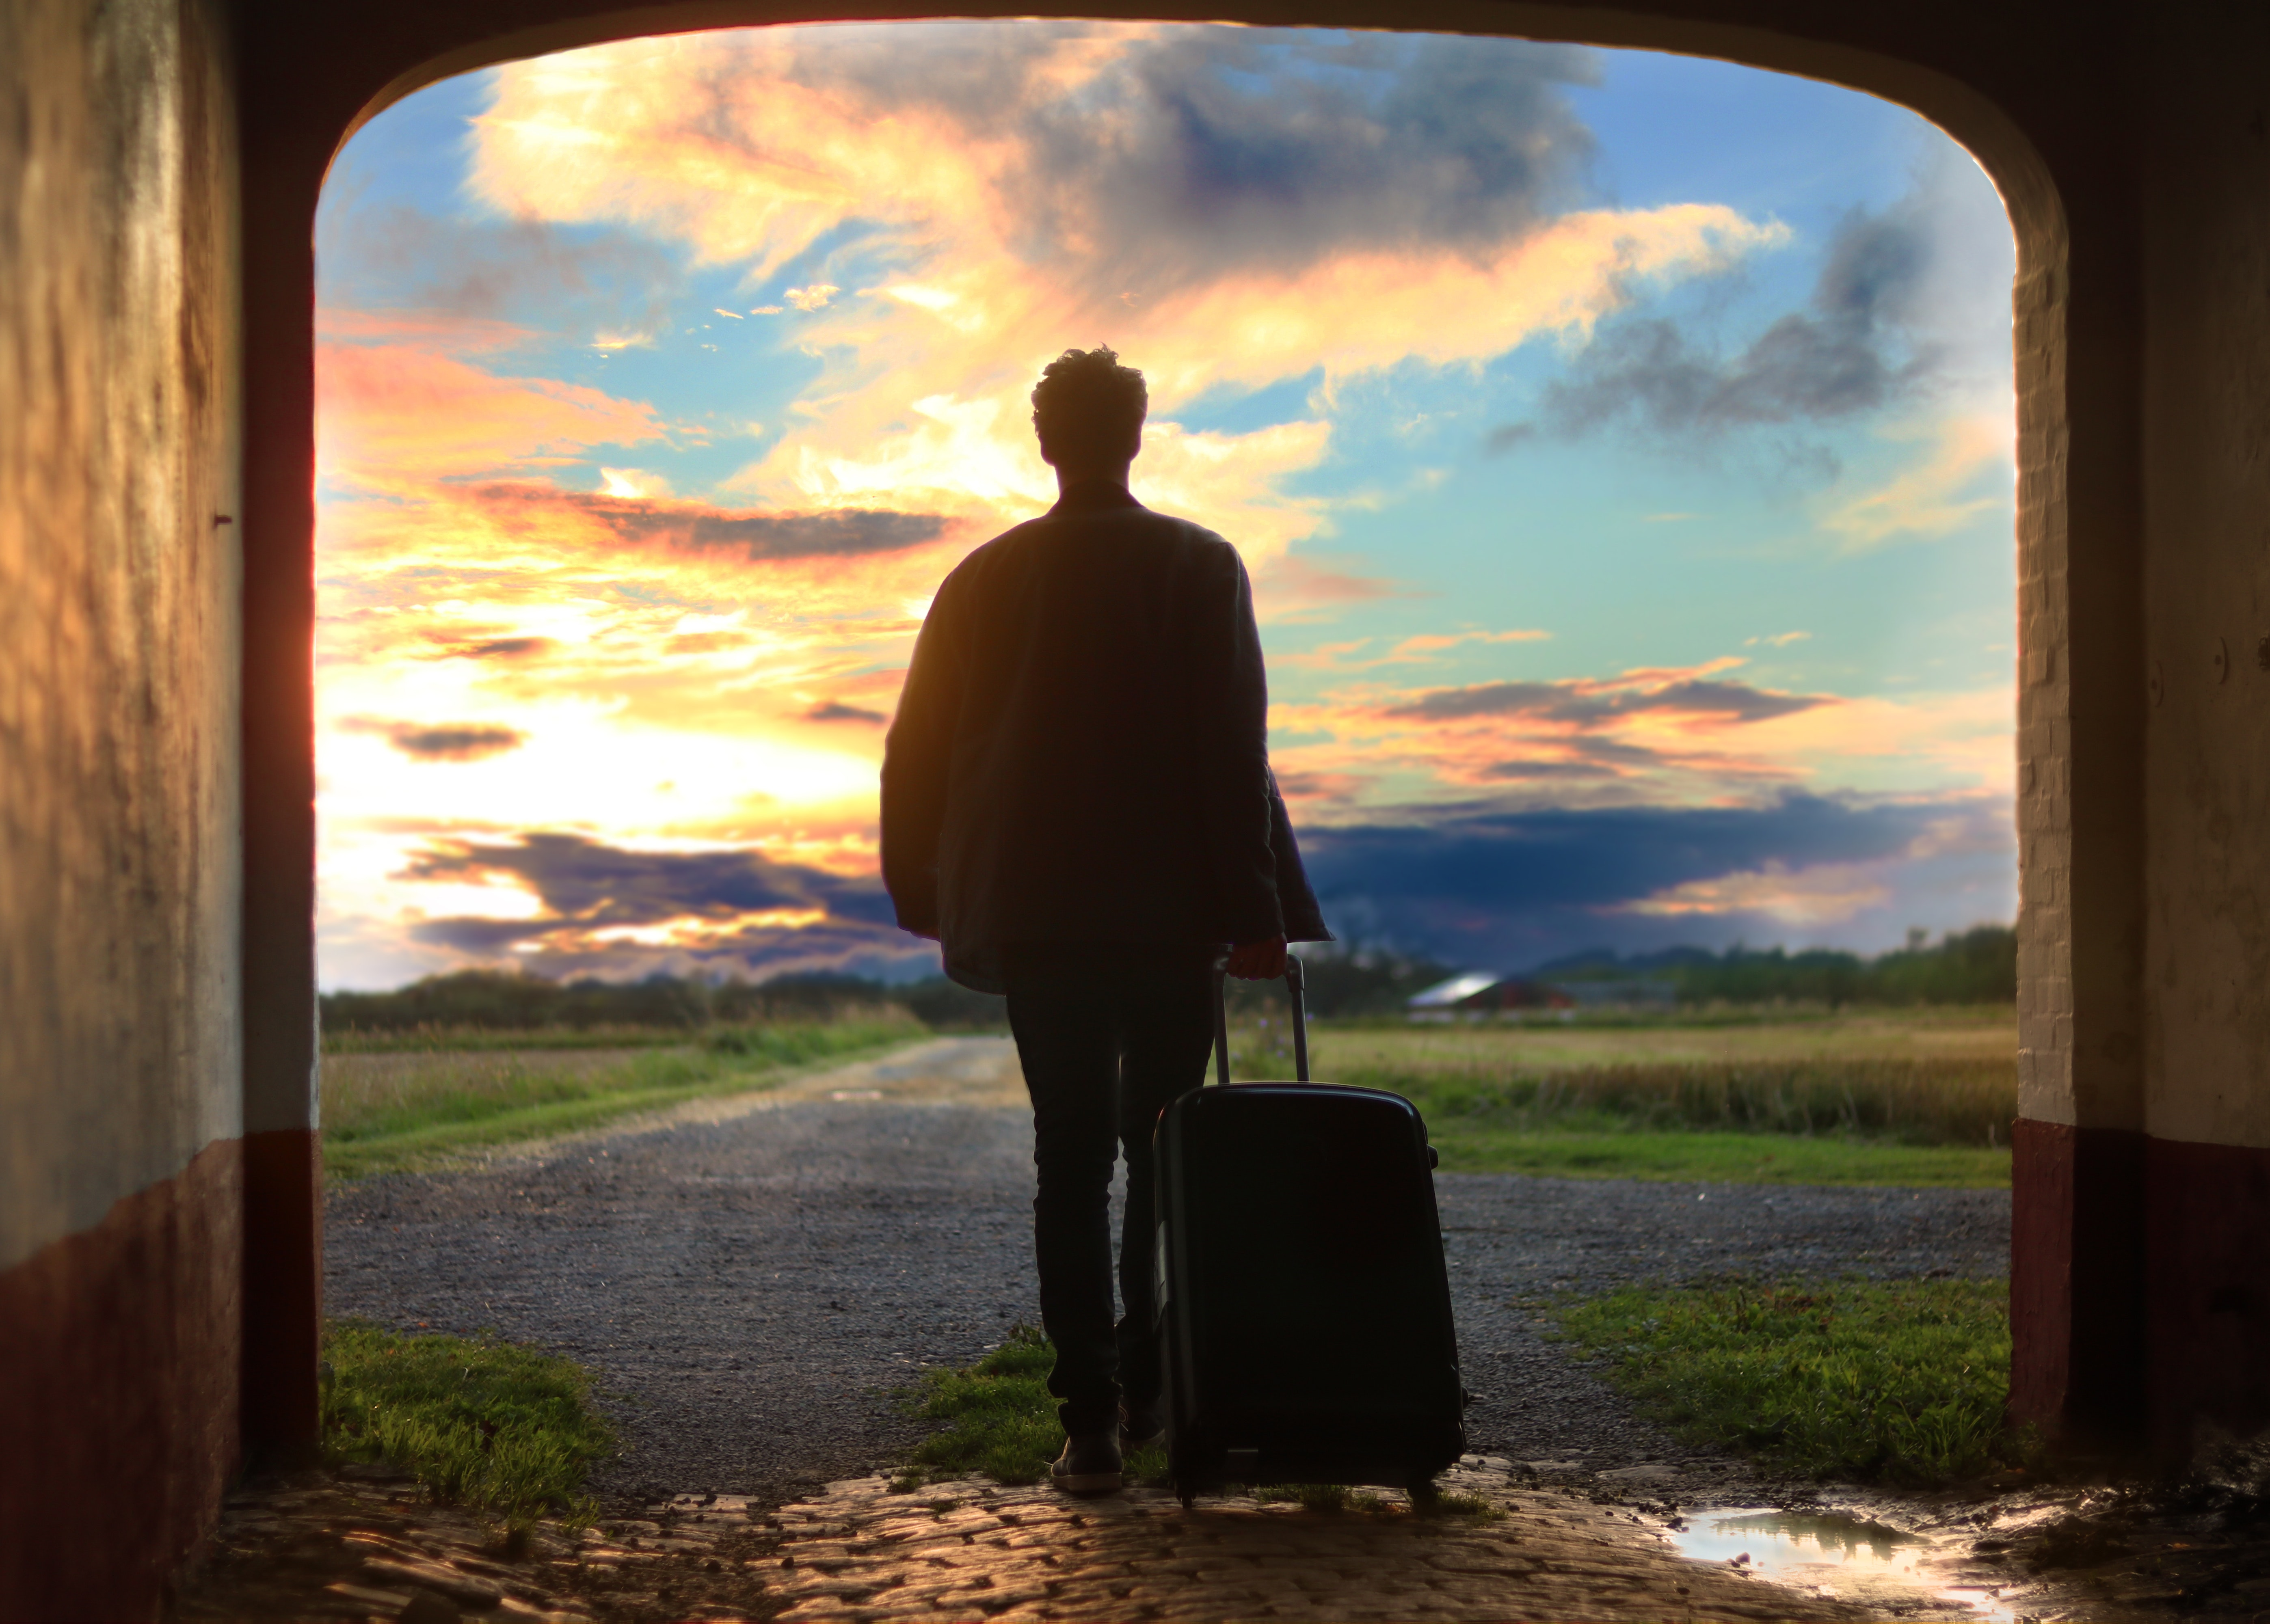 136466 download wallpaper Dawn, Miscellanea, Miscellaneous, Journey, Human, Person, Suitcase screensavers and pictures for free